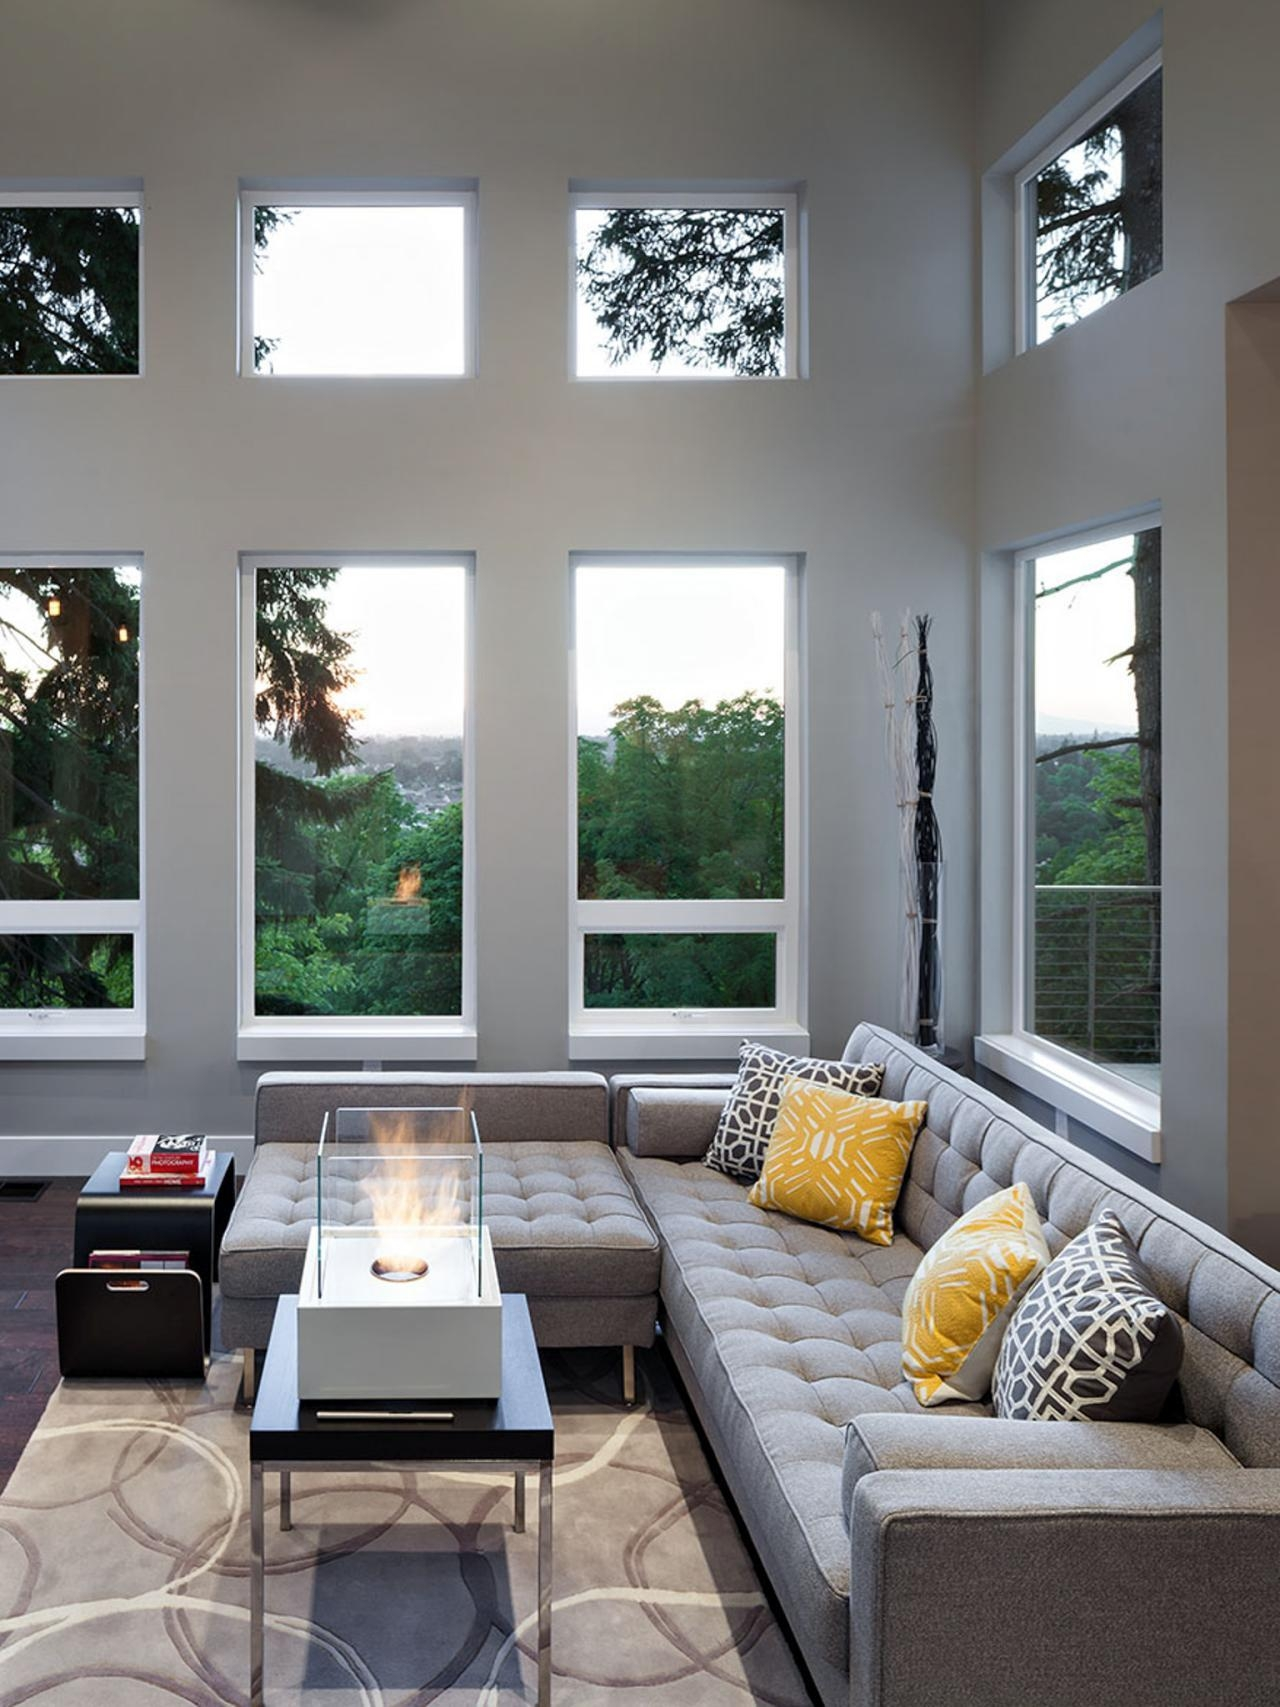 grey sofa decorating ideas best sofas for low back pain 2019 latest gray living room